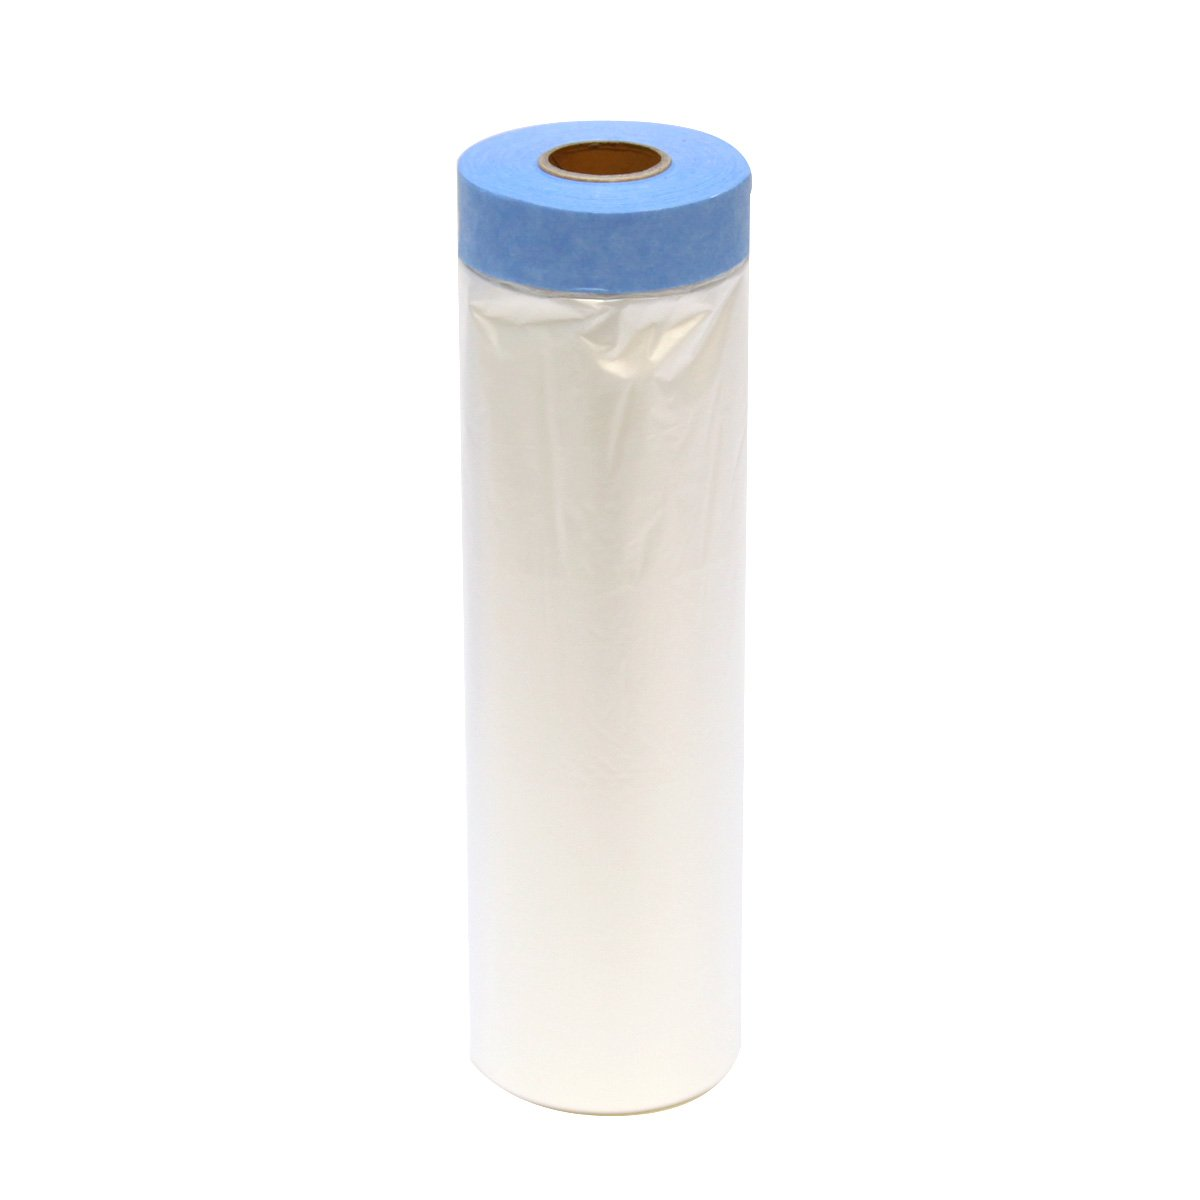 Easy Mask Tape & Drape Pre-Tape Masking Film 3.94 x 72 feet with 14 day PerfectEdge Tape by Easy Mask (Image #2)